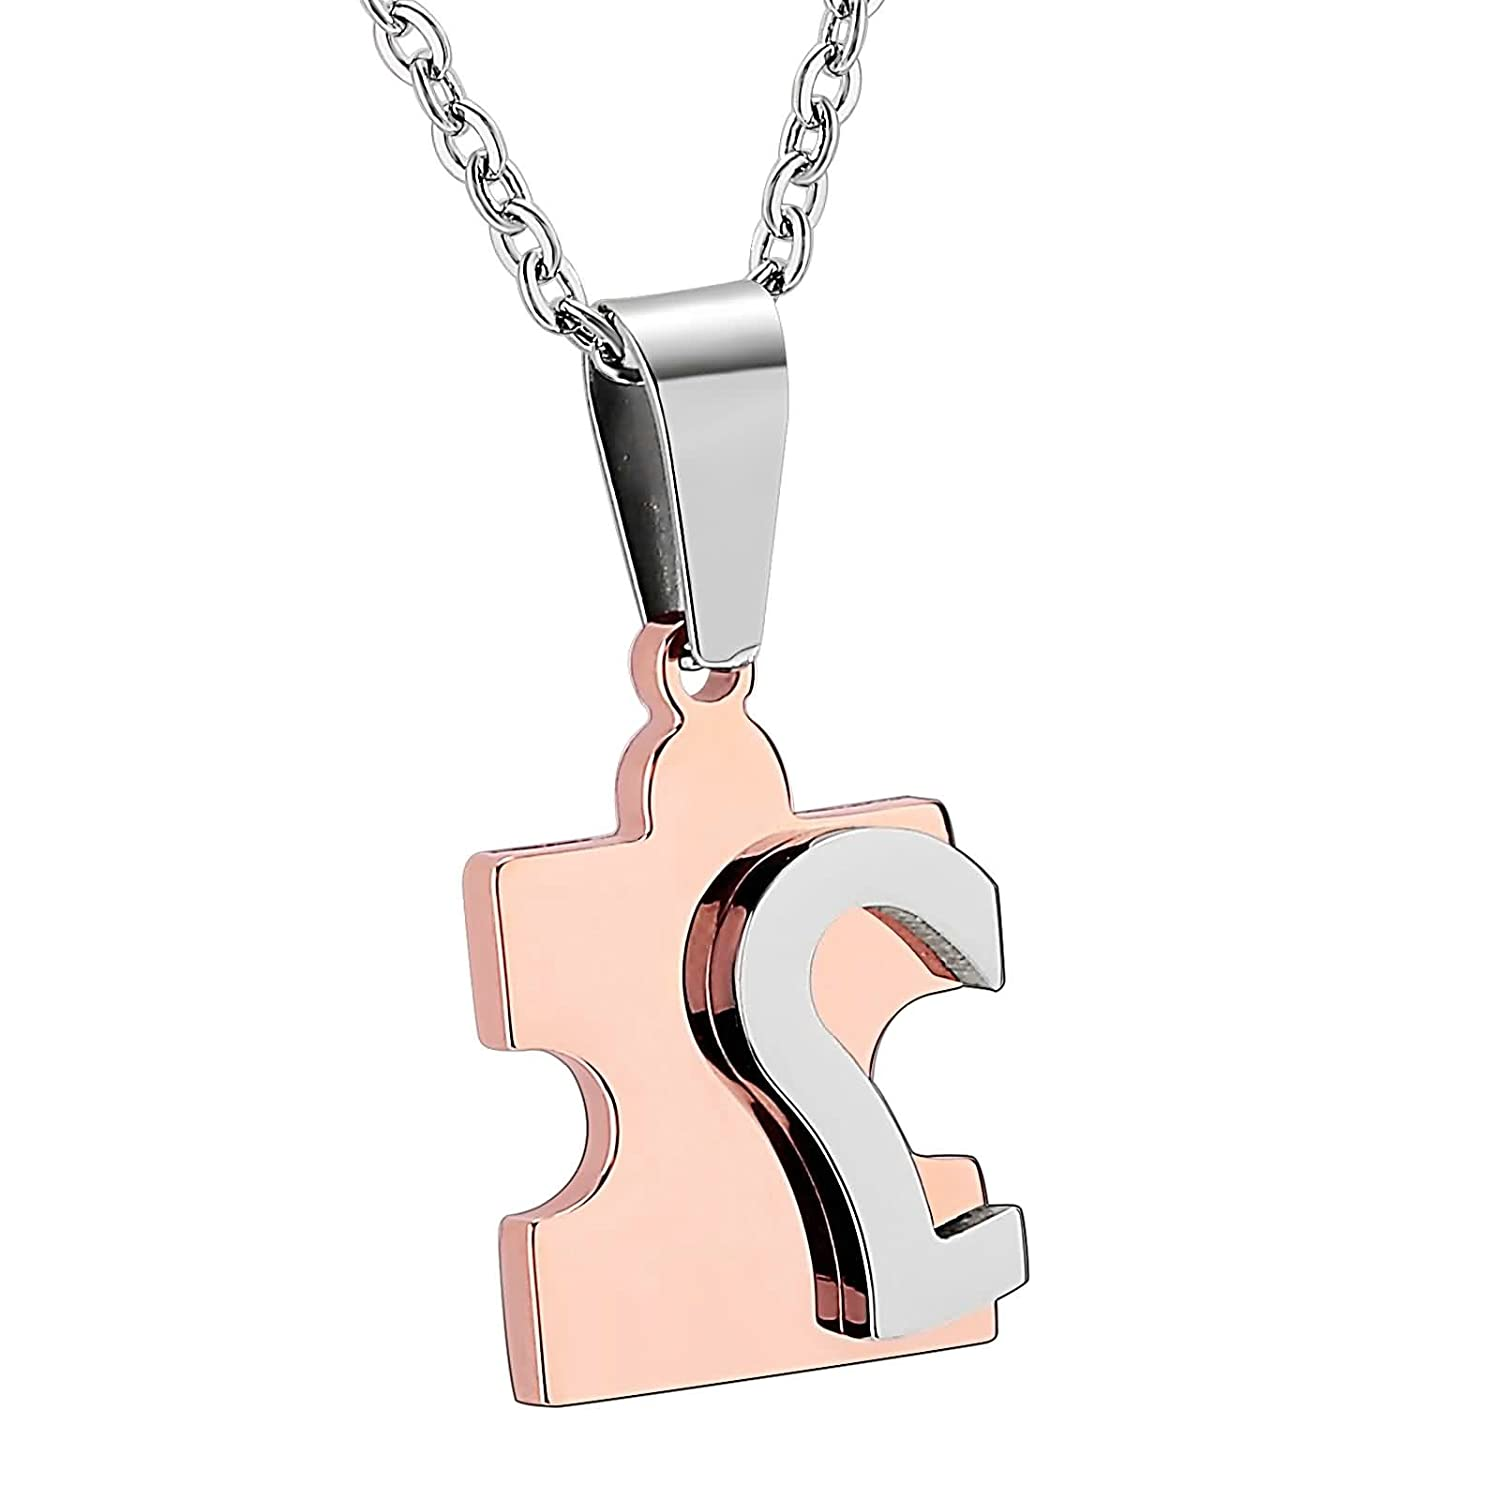 AMDXD Jewelry Stainless Steel Pendant Necklace for Men Women Puzzle Heart 2X1.5CM